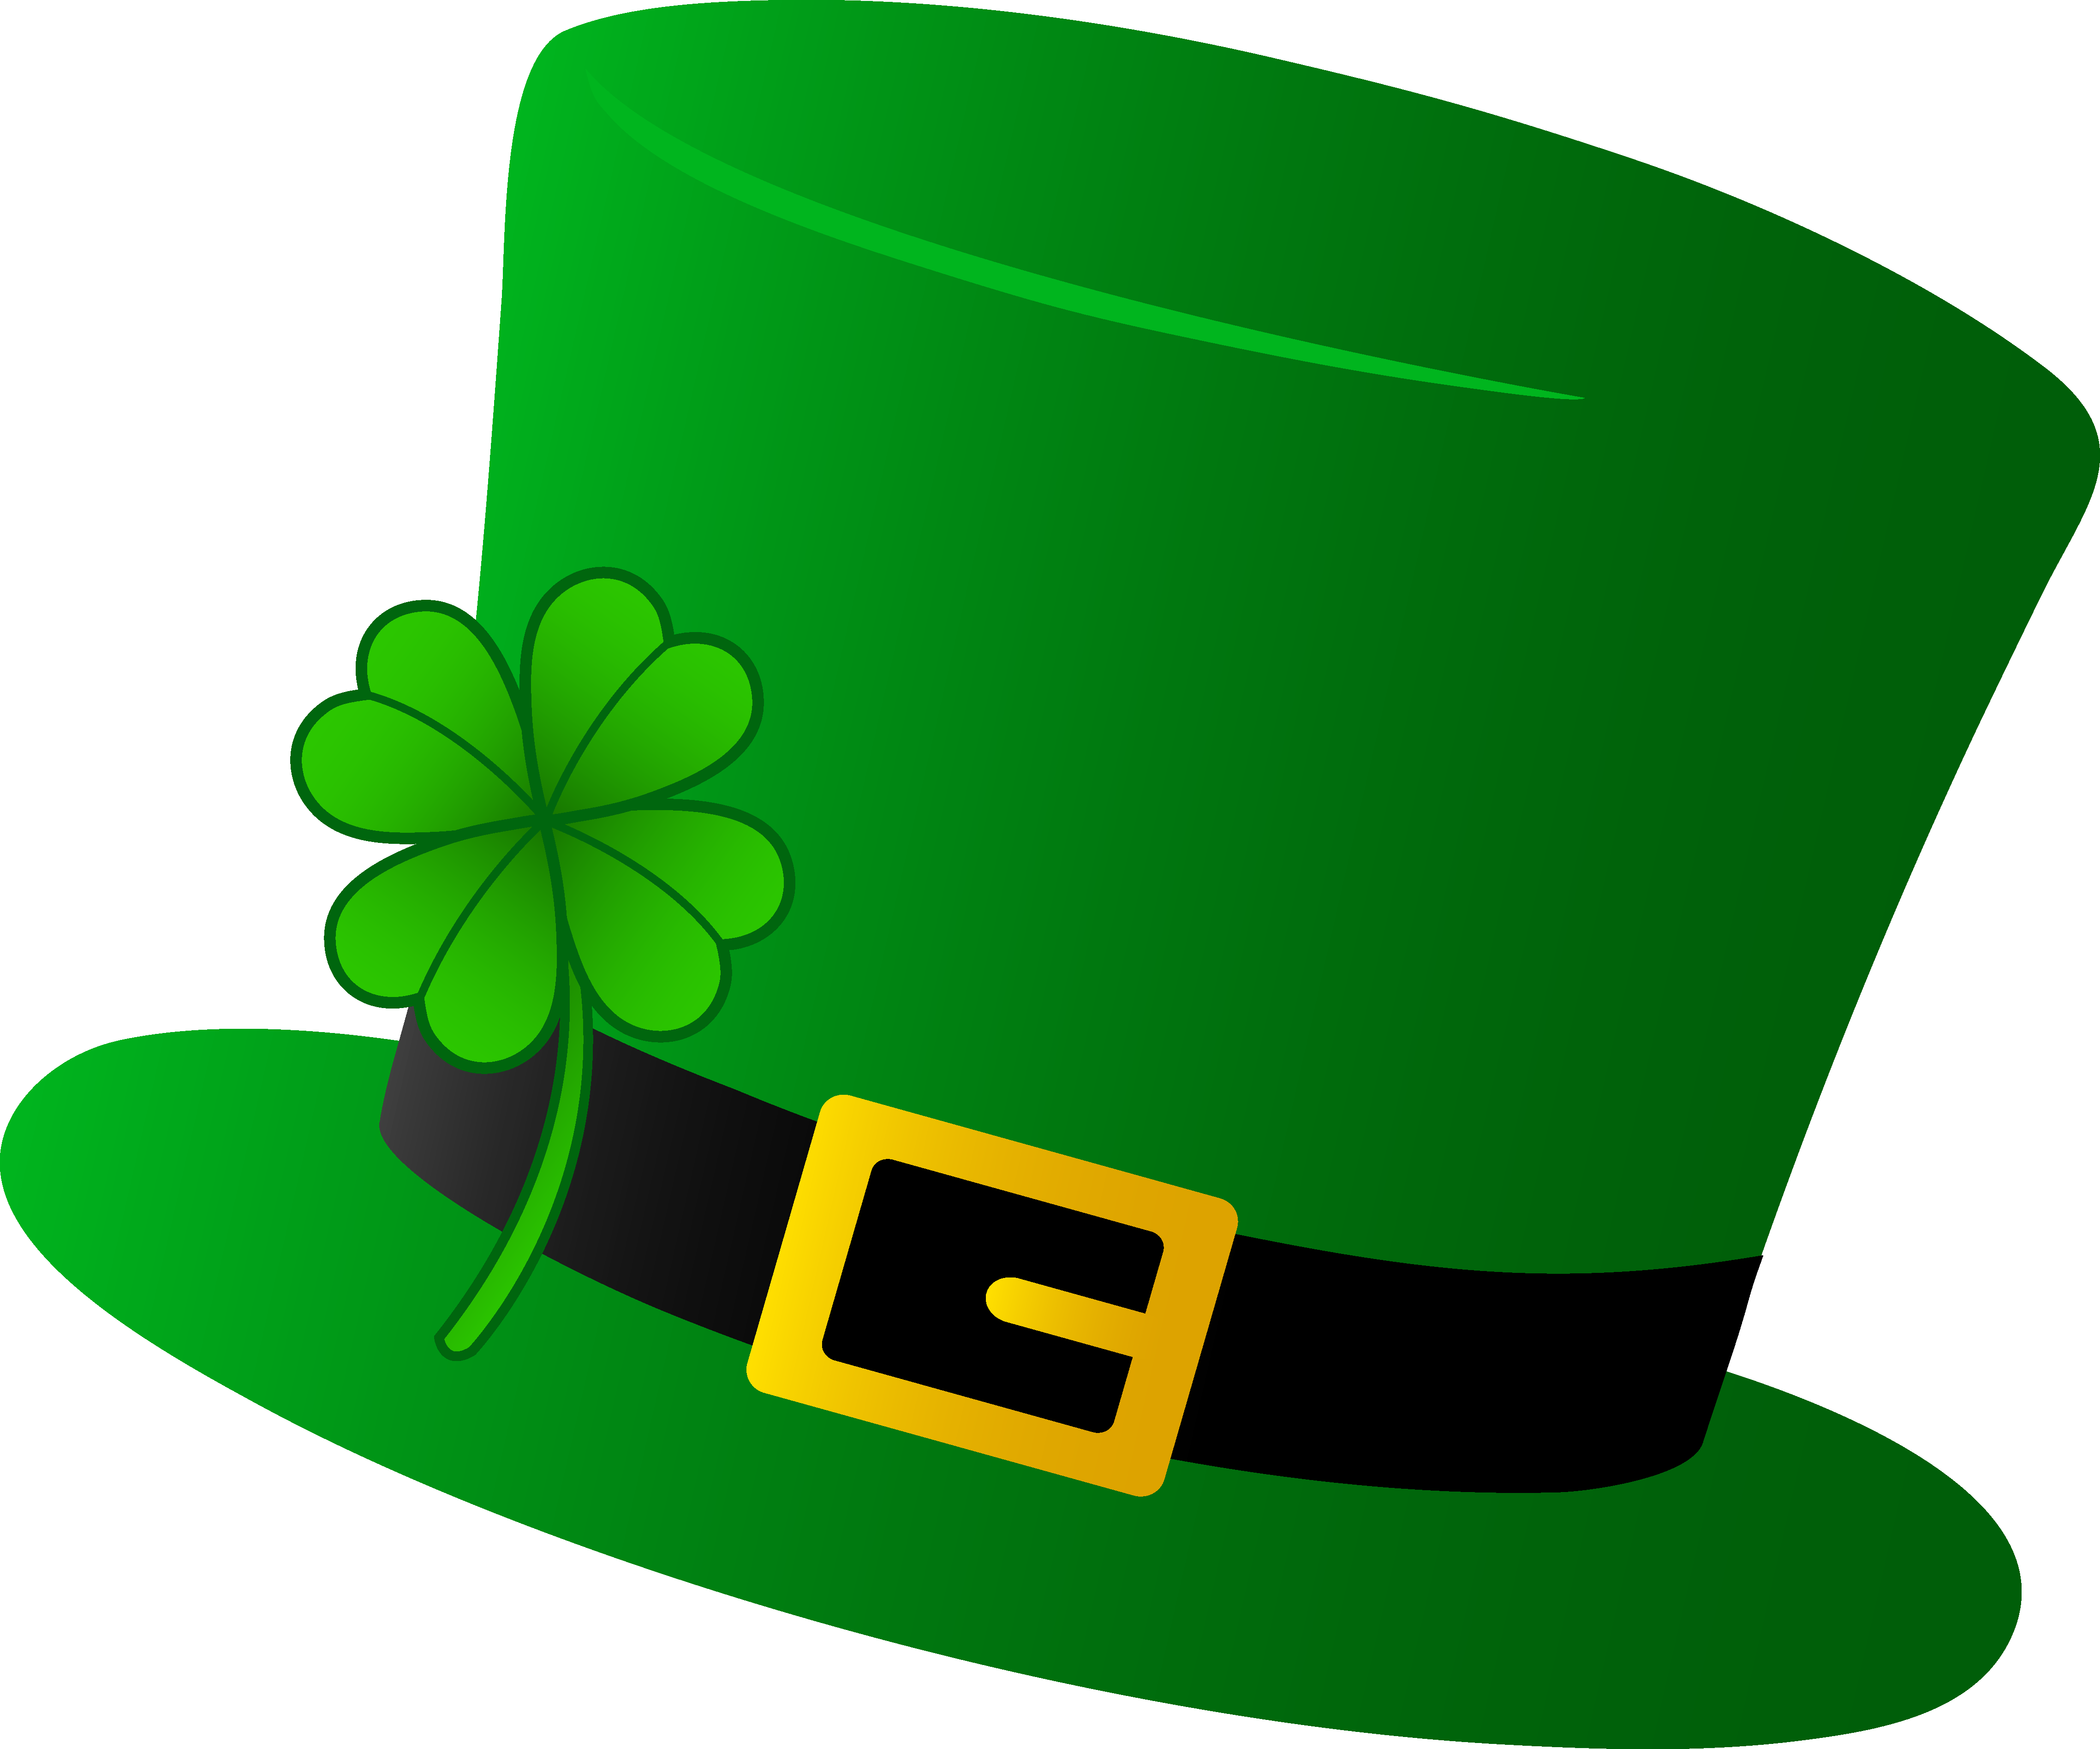 Related Clip Art. St patricks day ...